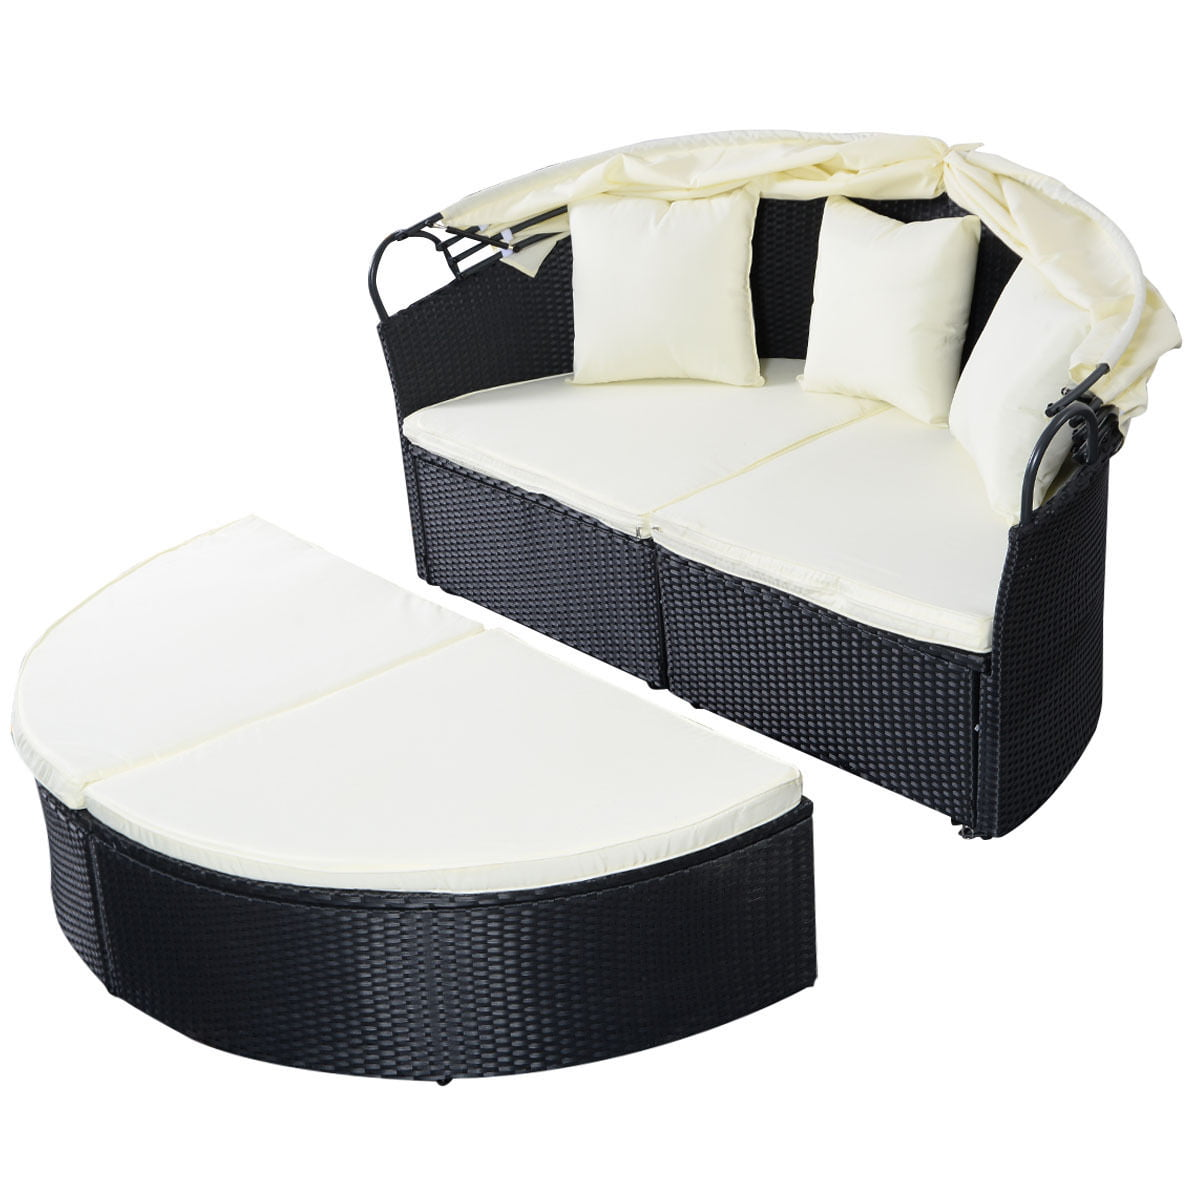 Costway Outdoor Patio Sofa Furniture Round Retractable Canopy Daybed Black Wicker Rattan - Walmart.com  sc 1 st  Walmart : patio bed with canopy - memphite.com